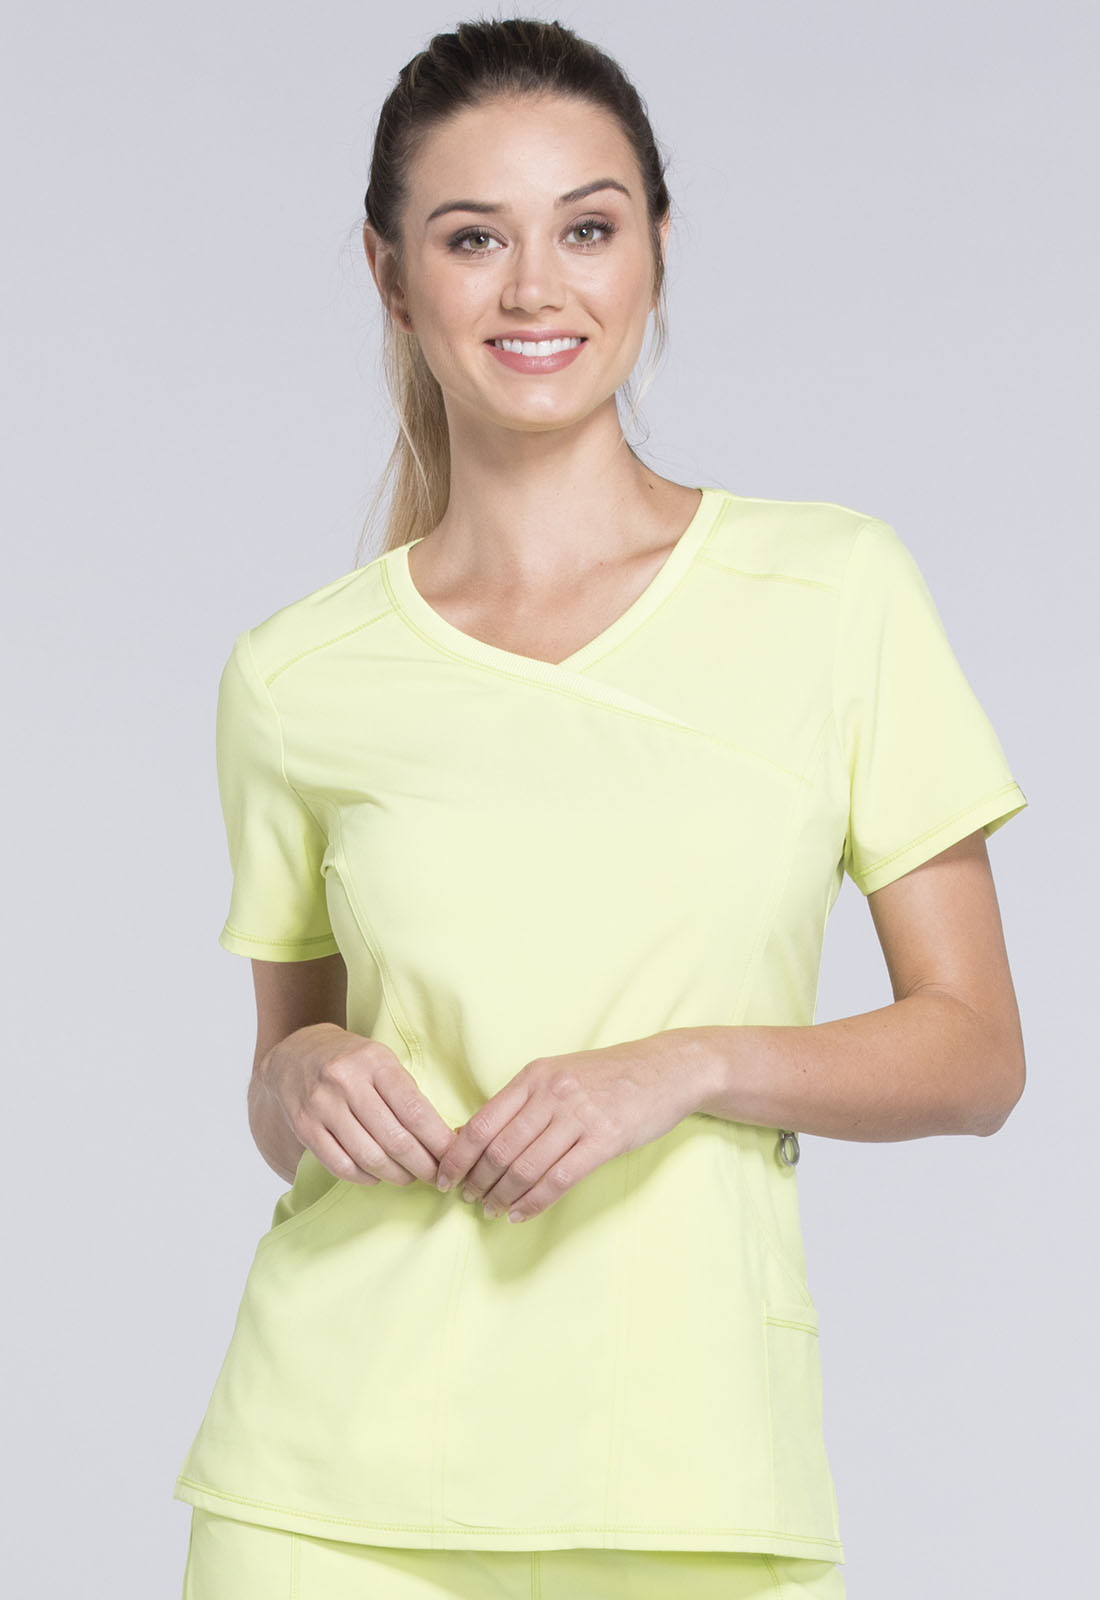 e93ffd6b79f Infinity Mock Wrap Top in Sunny Day 2625A-SUDA from Scrubs Express